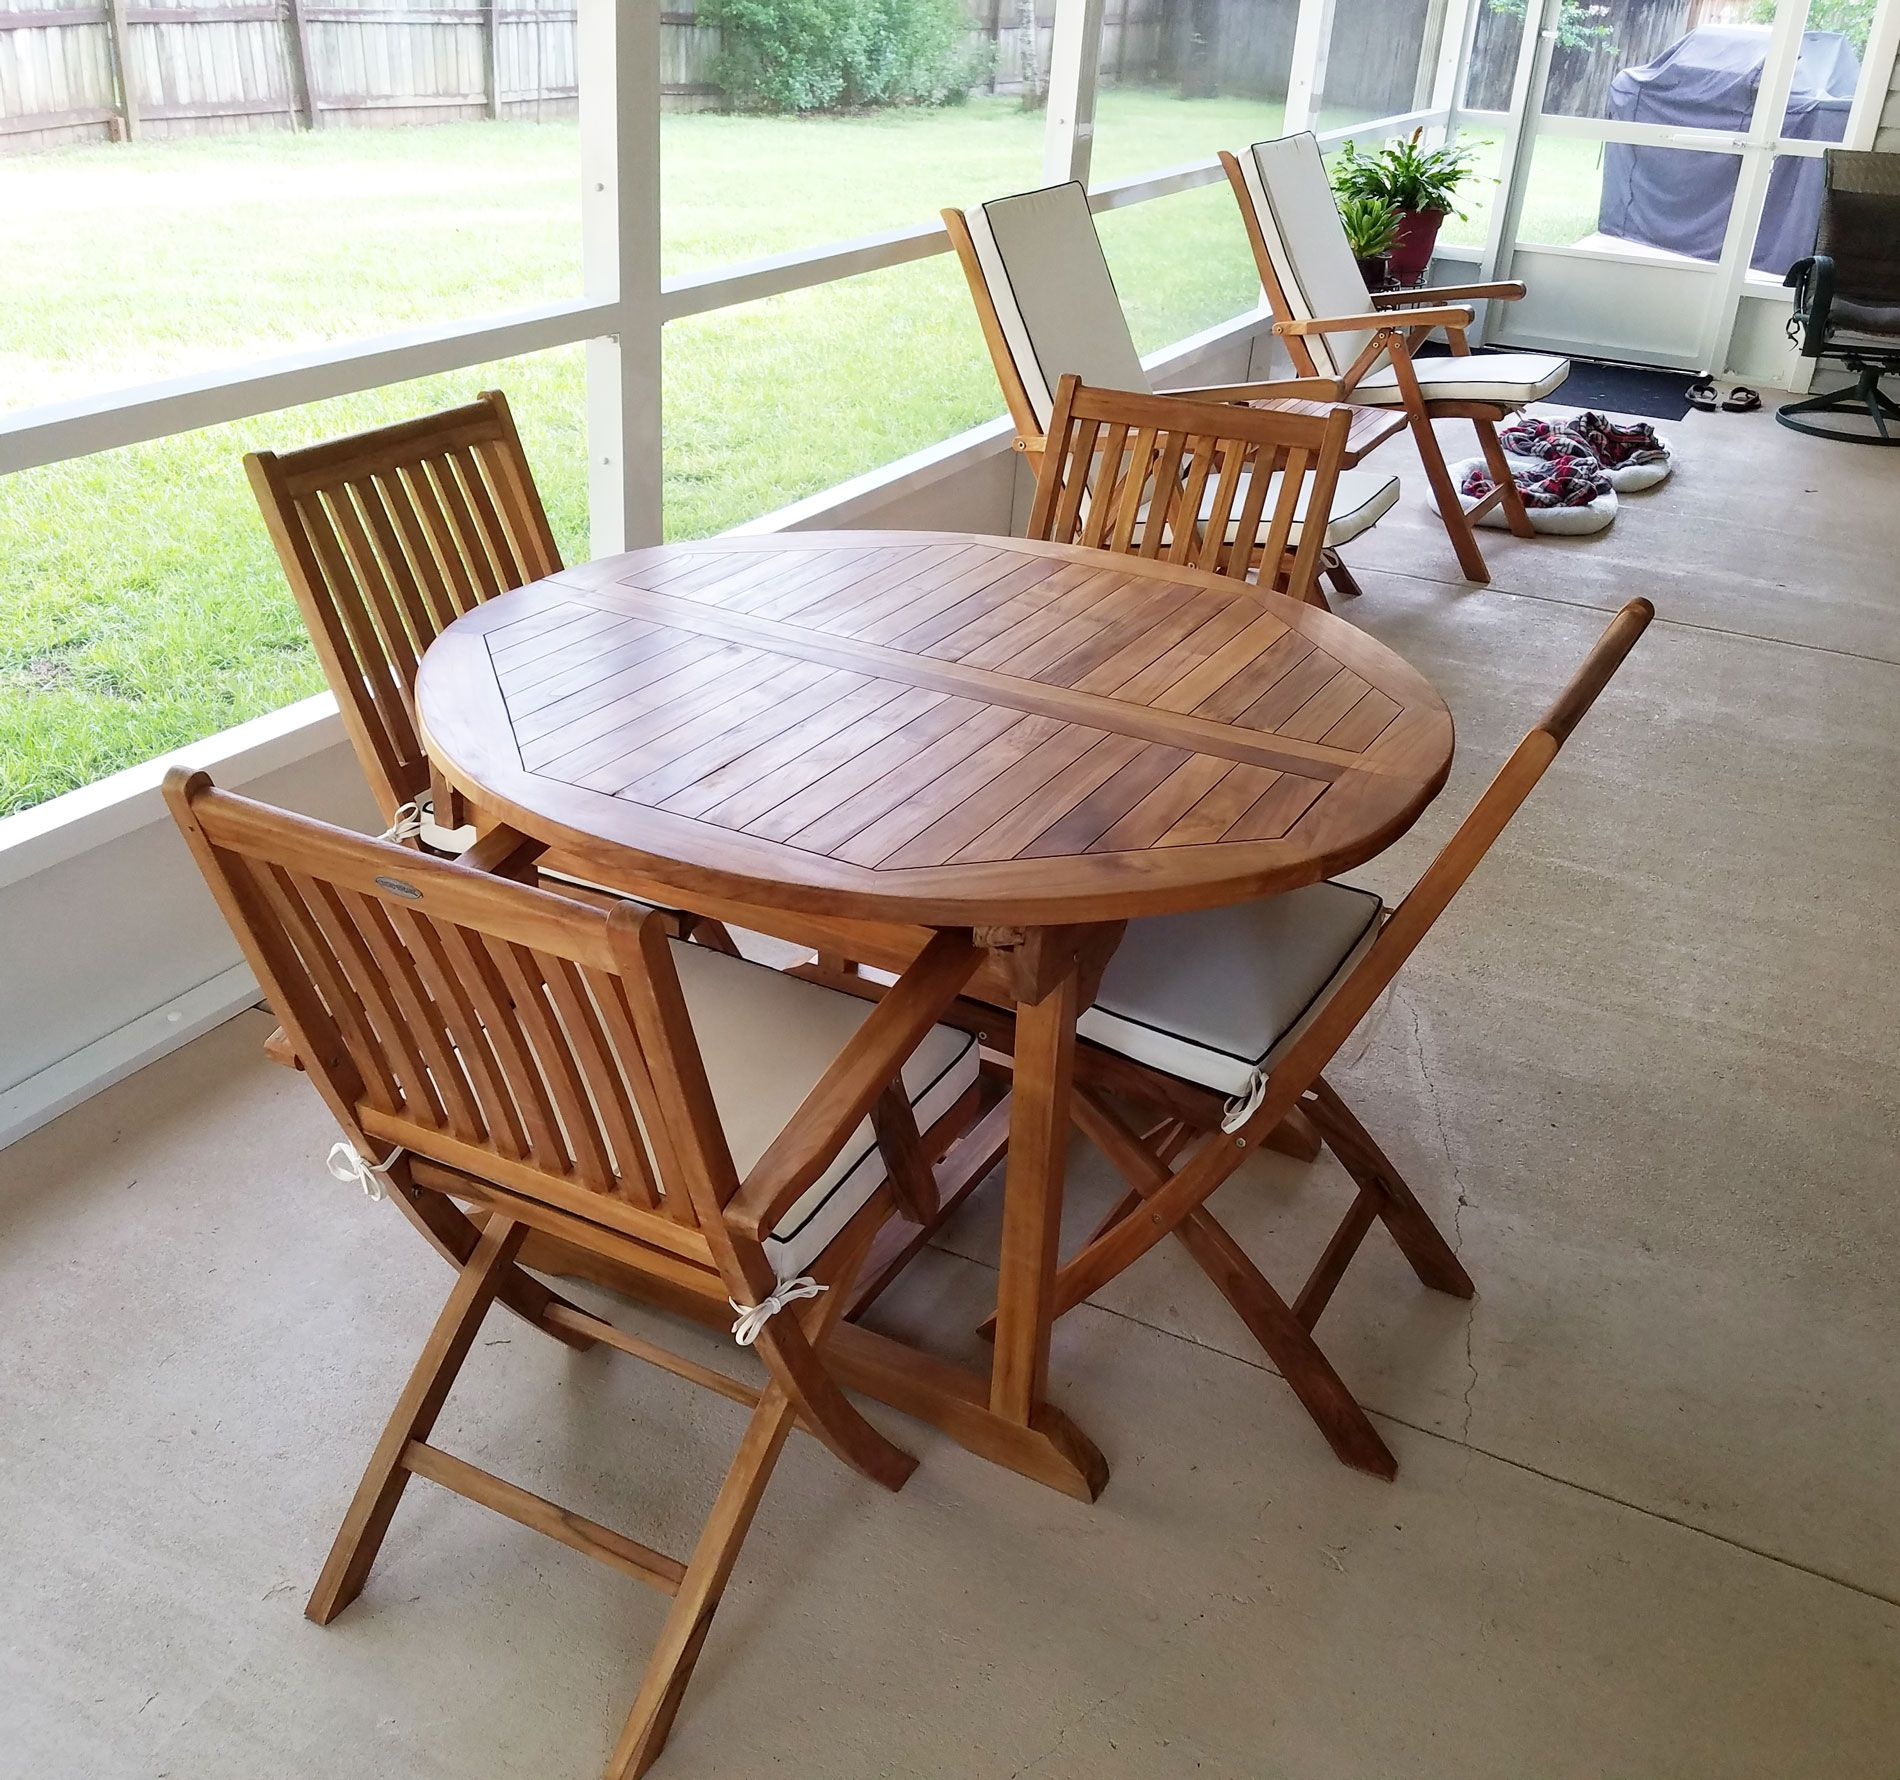 Teak Wood Orleans Round To Oval Extension Table By Chic Teak Only